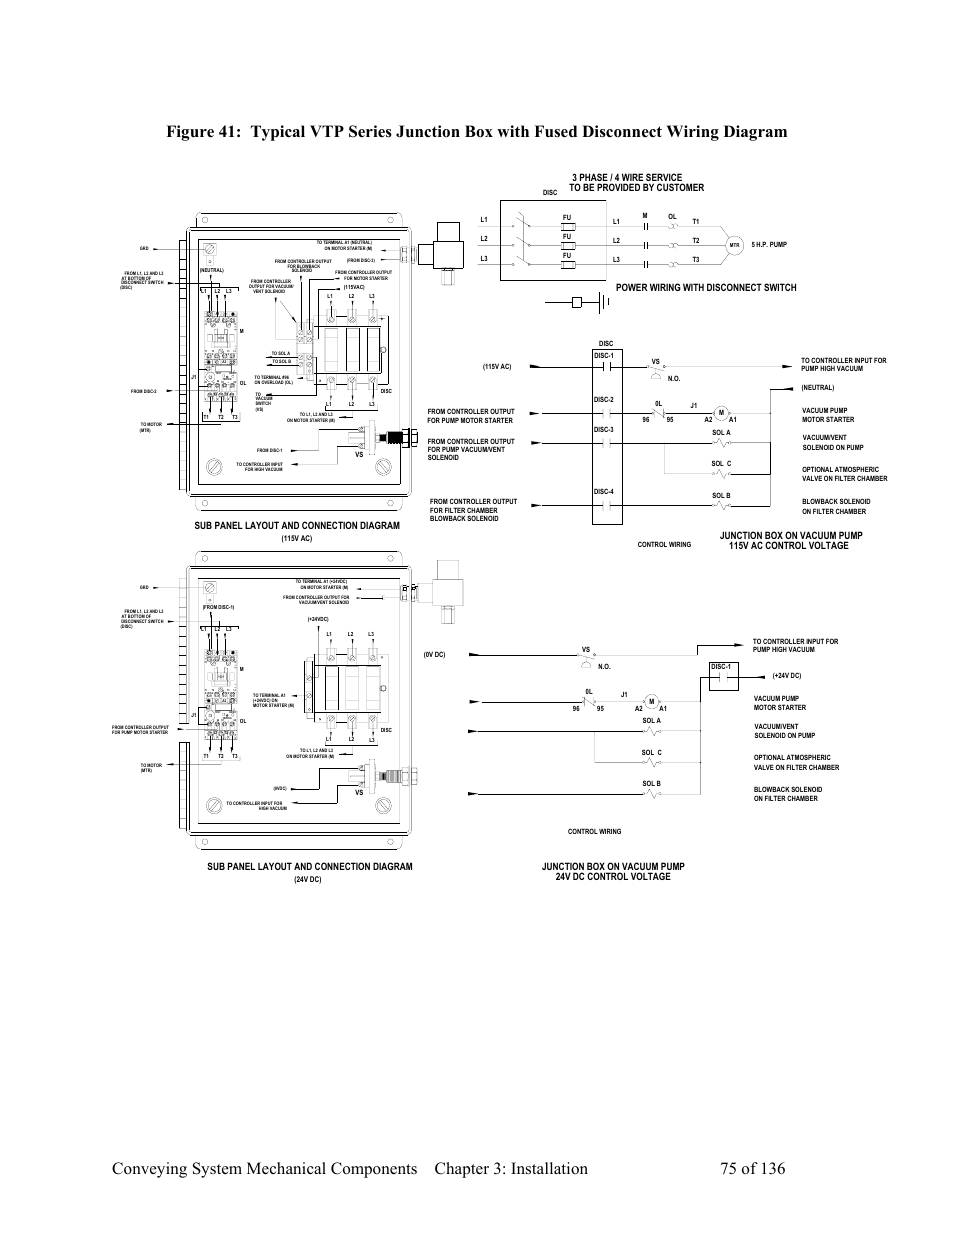 hight resolution of power wiring with disconnect switch 24v dc control voltage junction box on vacuum pump